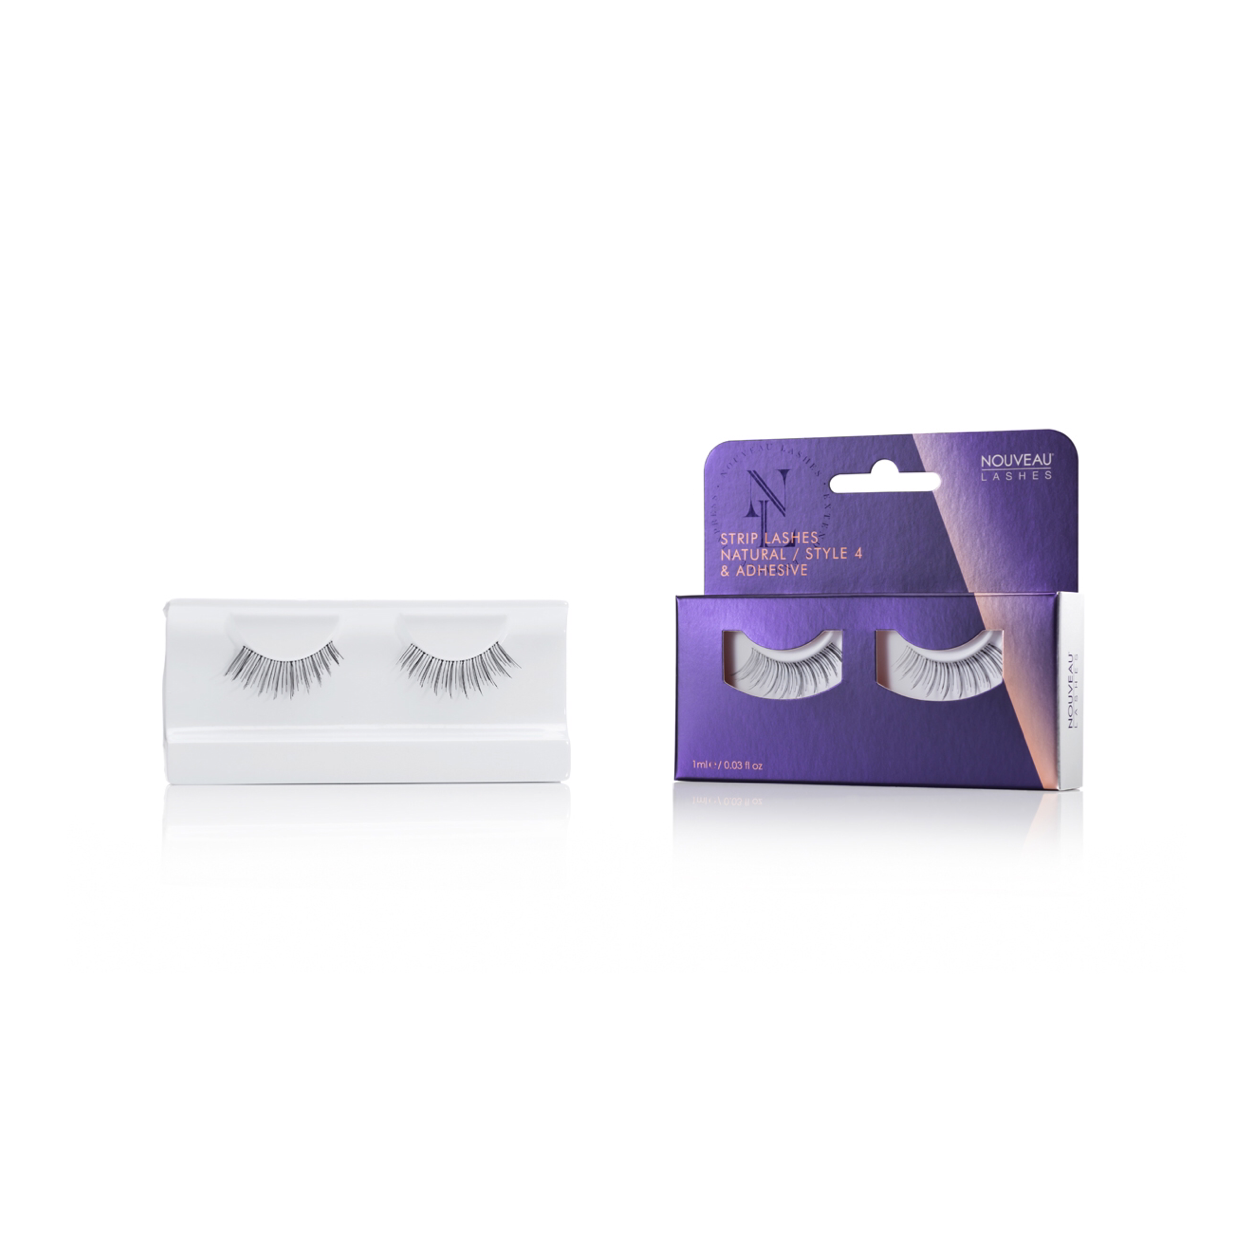 Nouveau Strip Lashes Natural Style 4